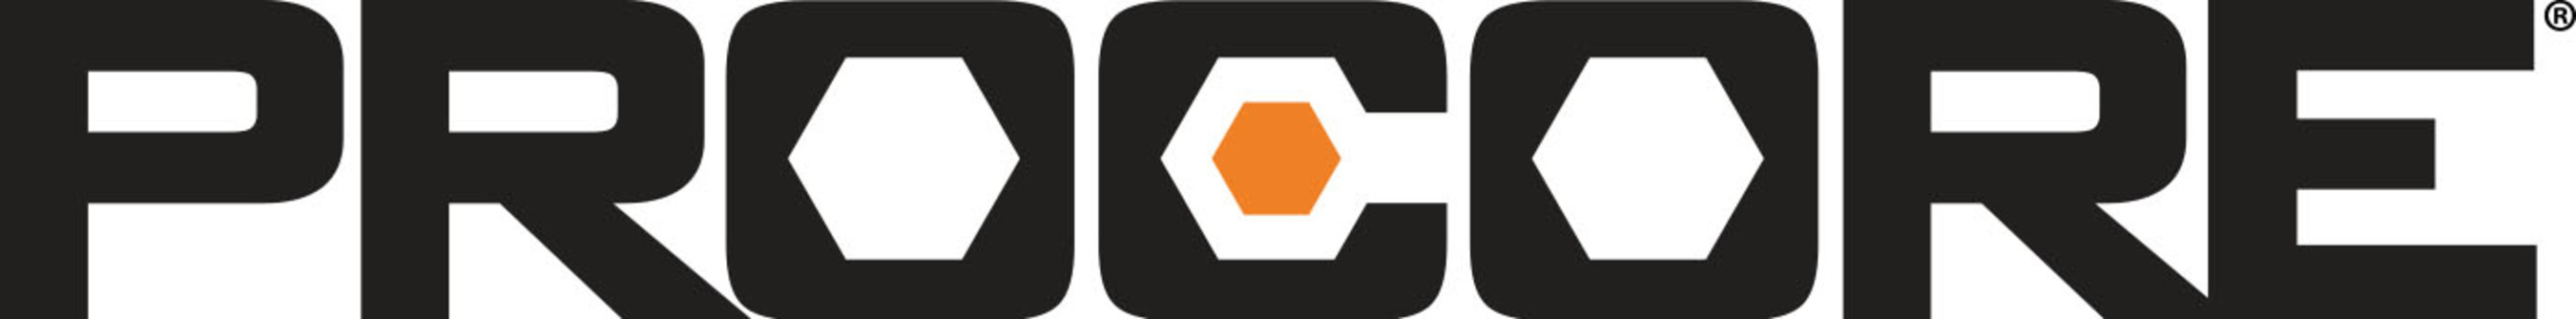 Procore Technologies, Inc. Raises $30 Million to Accelerate Growth of Construction Project Management Software Business